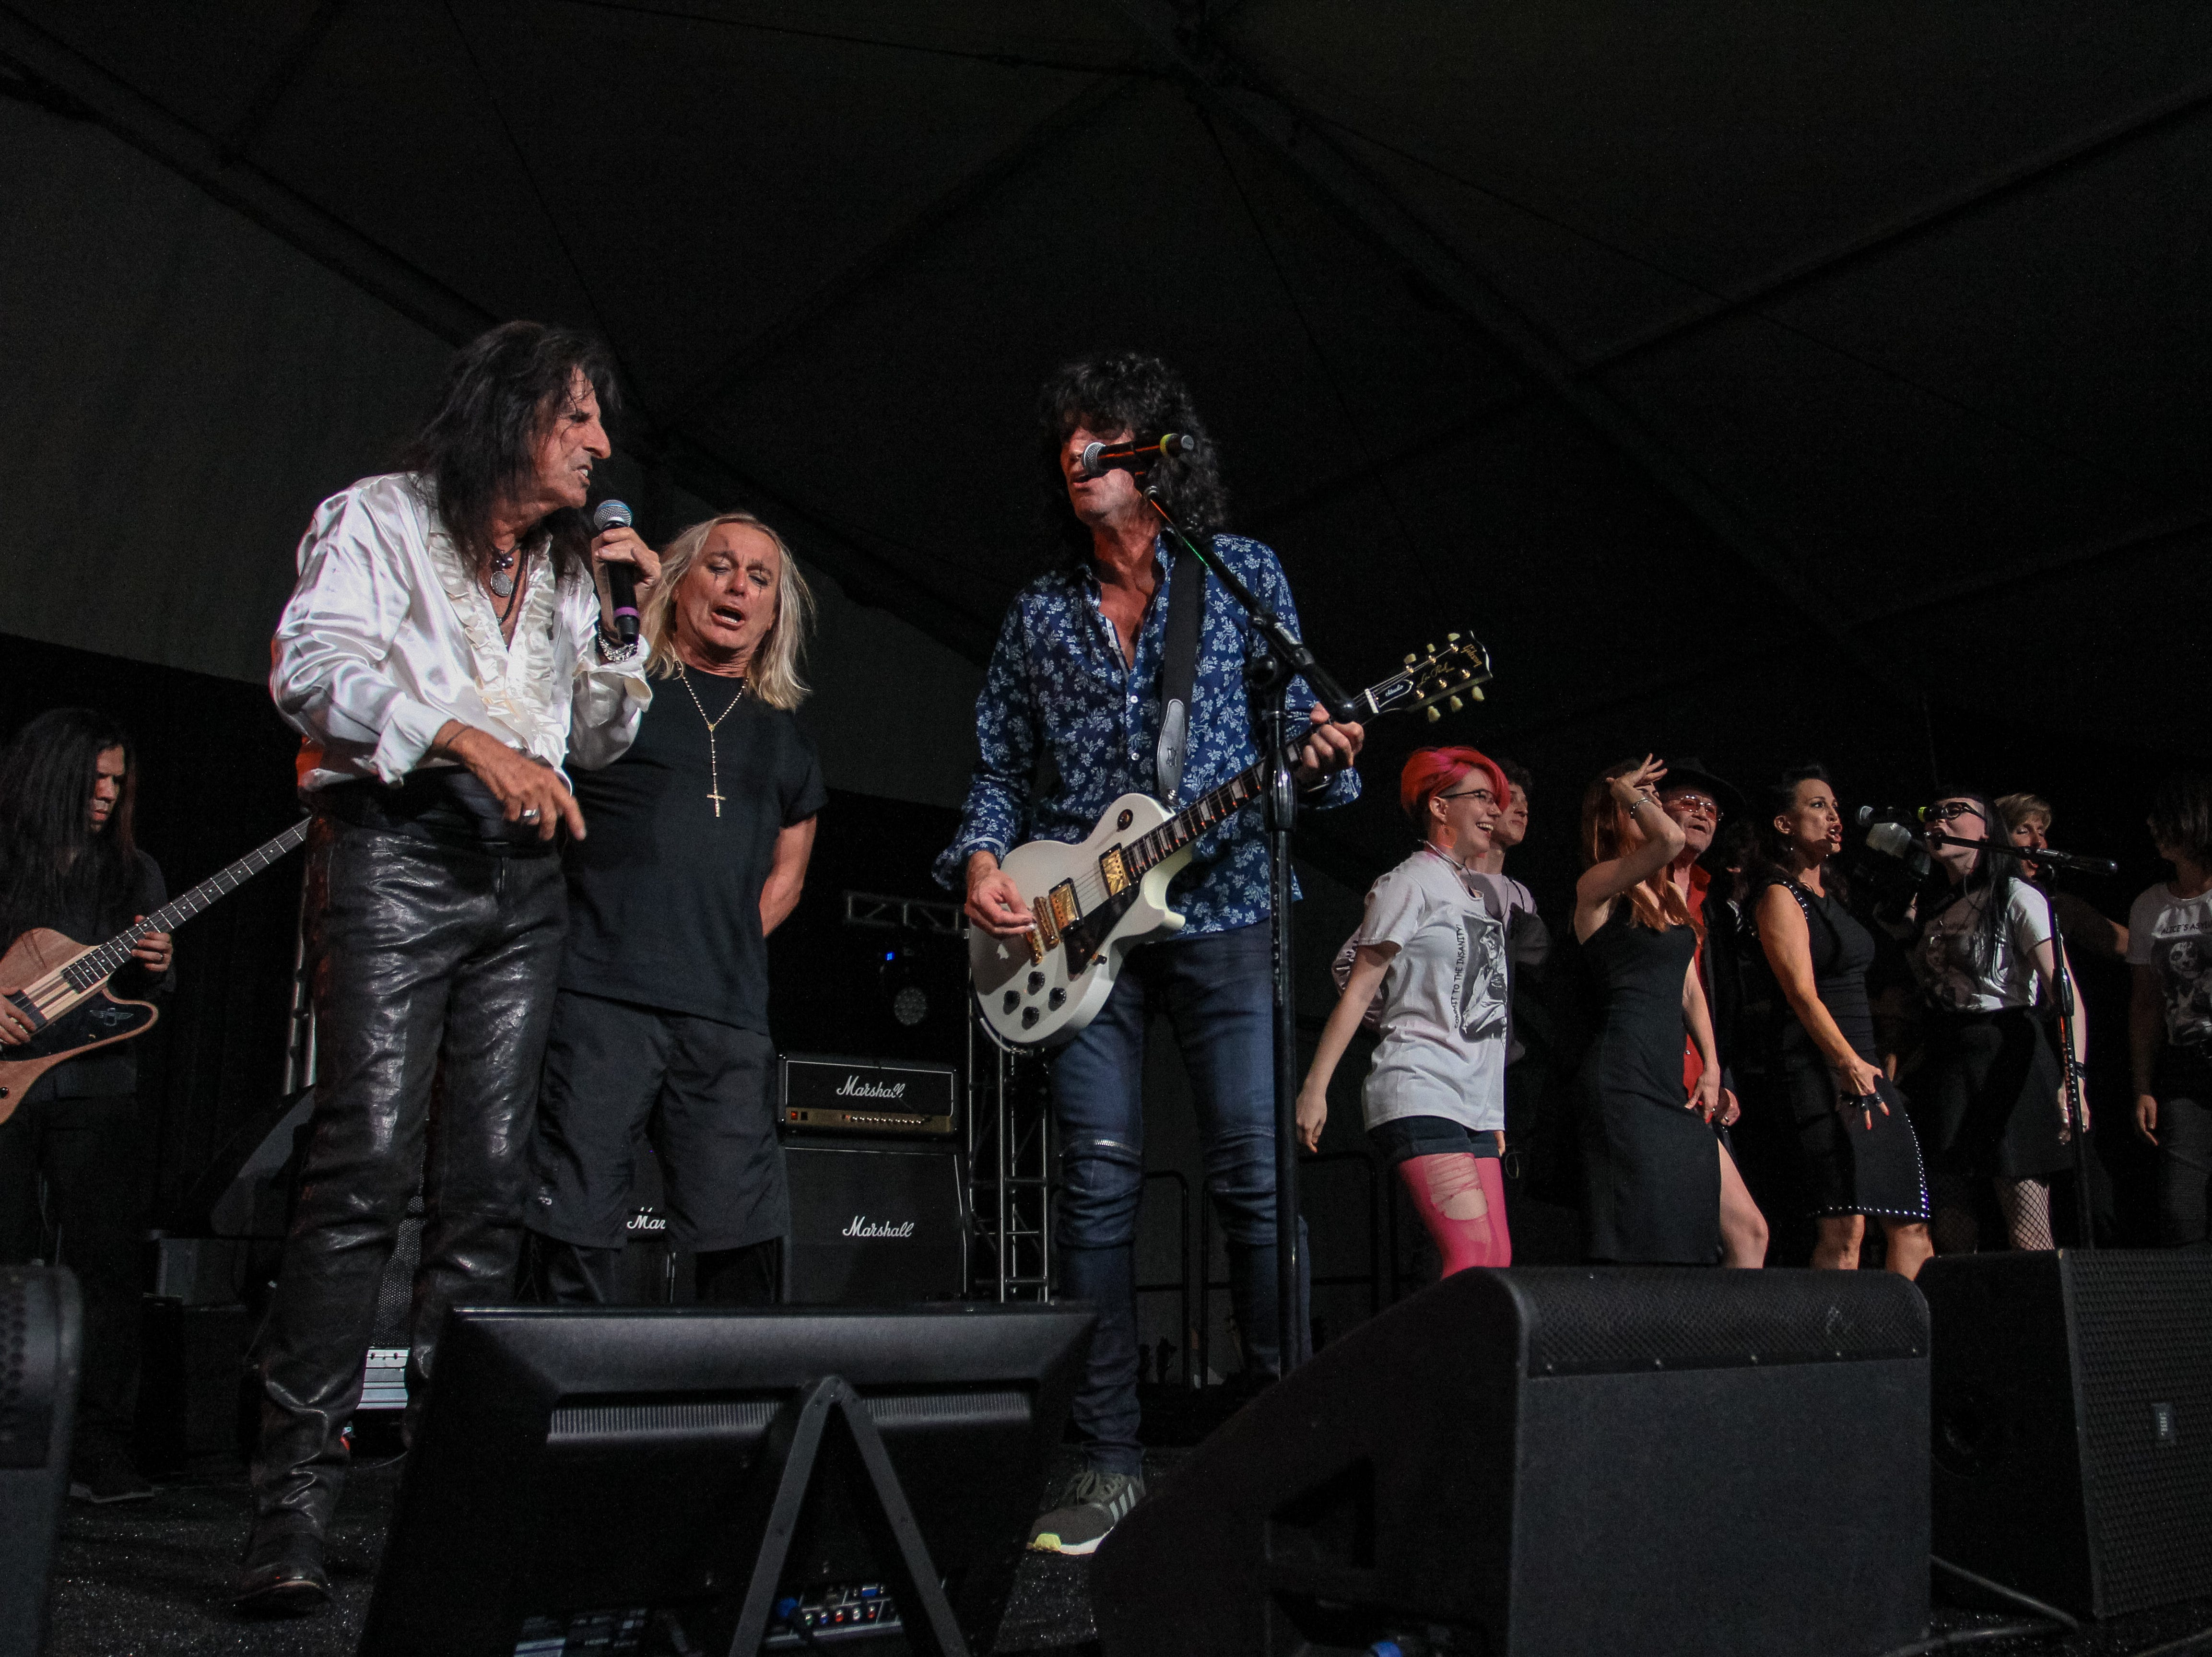 Alice Cooper, Tommy Thayer of Kiss and Robin Zander of Cheap Trick perform at Alice Cooper's Rock & Roll Fundraising Bash at the Las Sendas Golf Club in Mesa on April 27, 2019.